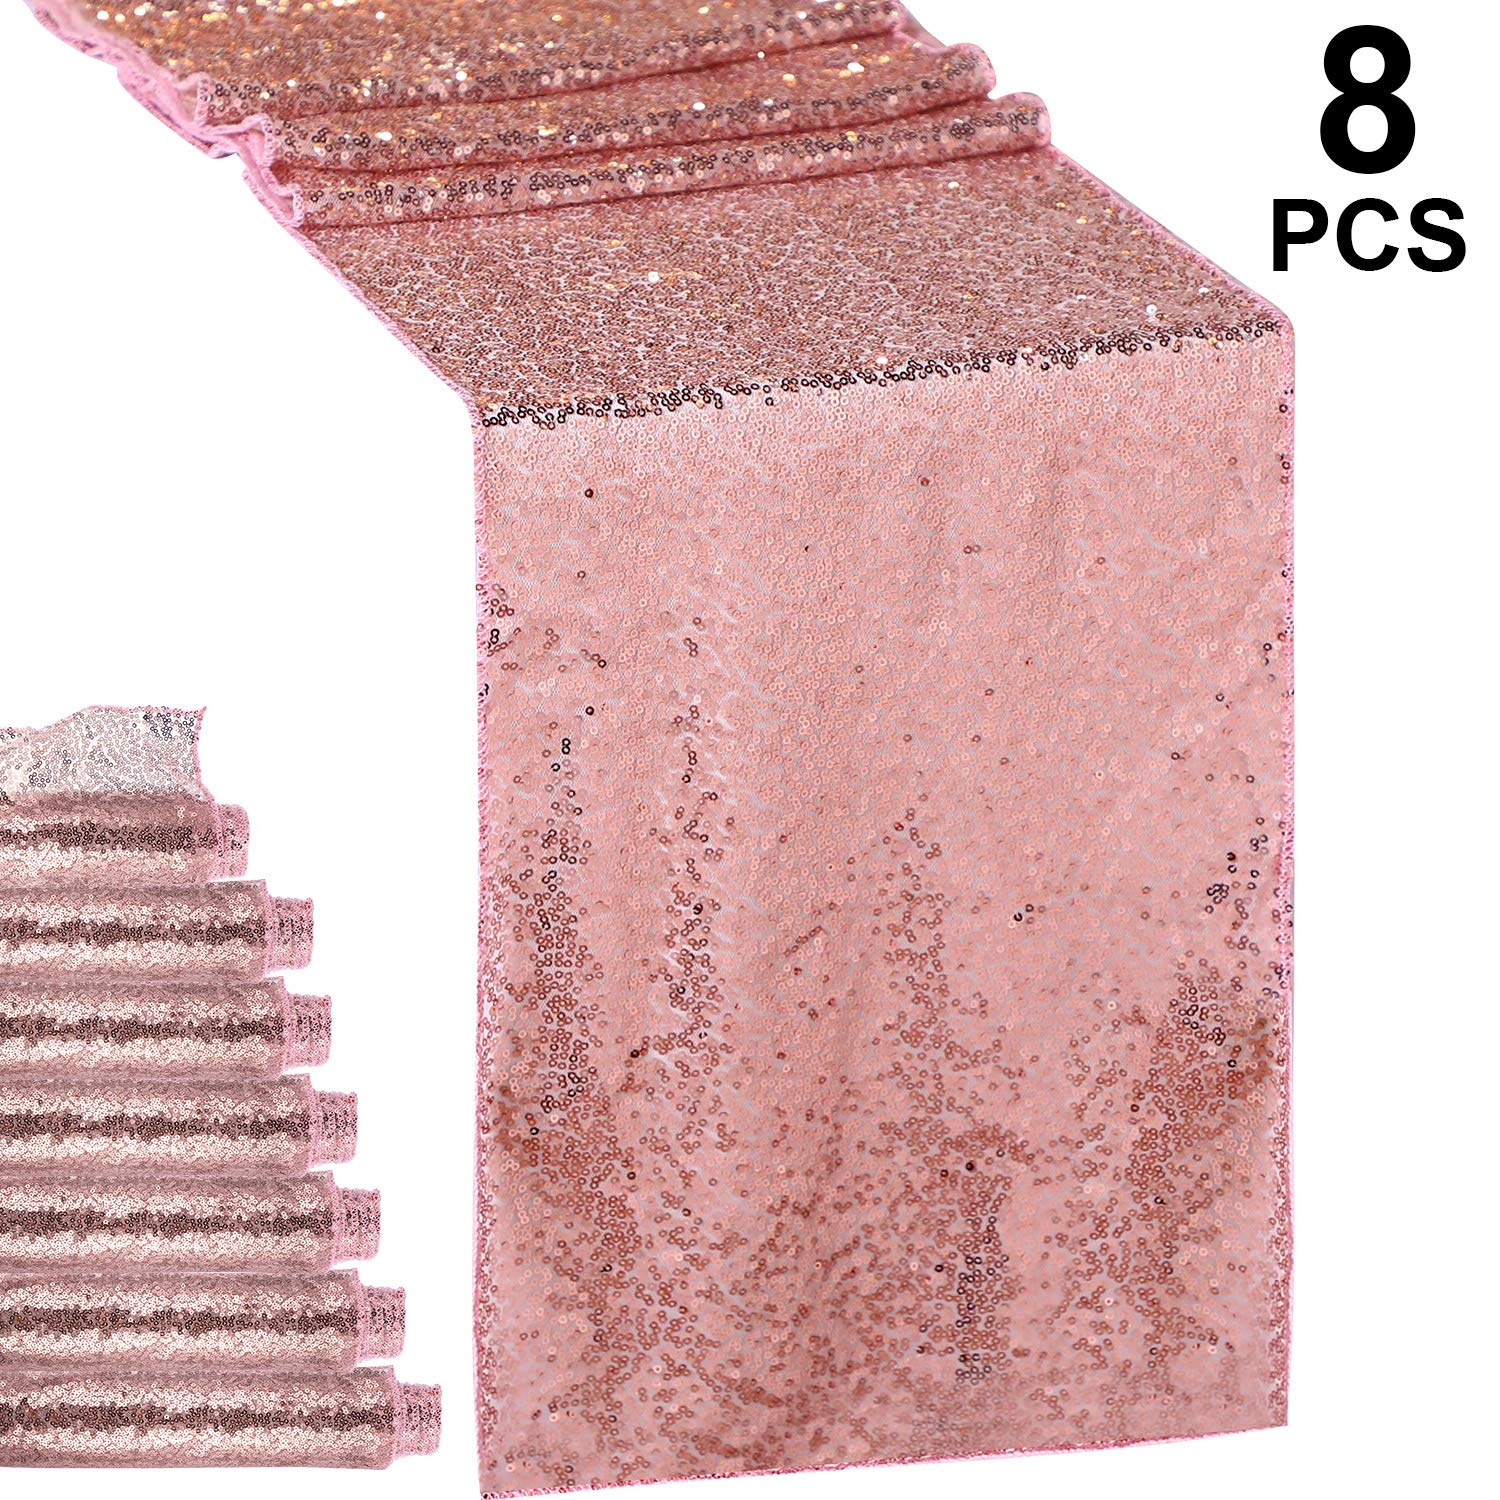 Hestya 8 Pieces Sequin Table Runner Glitter Sparkly 12 by 108 Inch for Wedding Engagement Birthday Summer Theme Party Bridal Baby Shower Dresser Decorations (Rose Gold) by Hestya